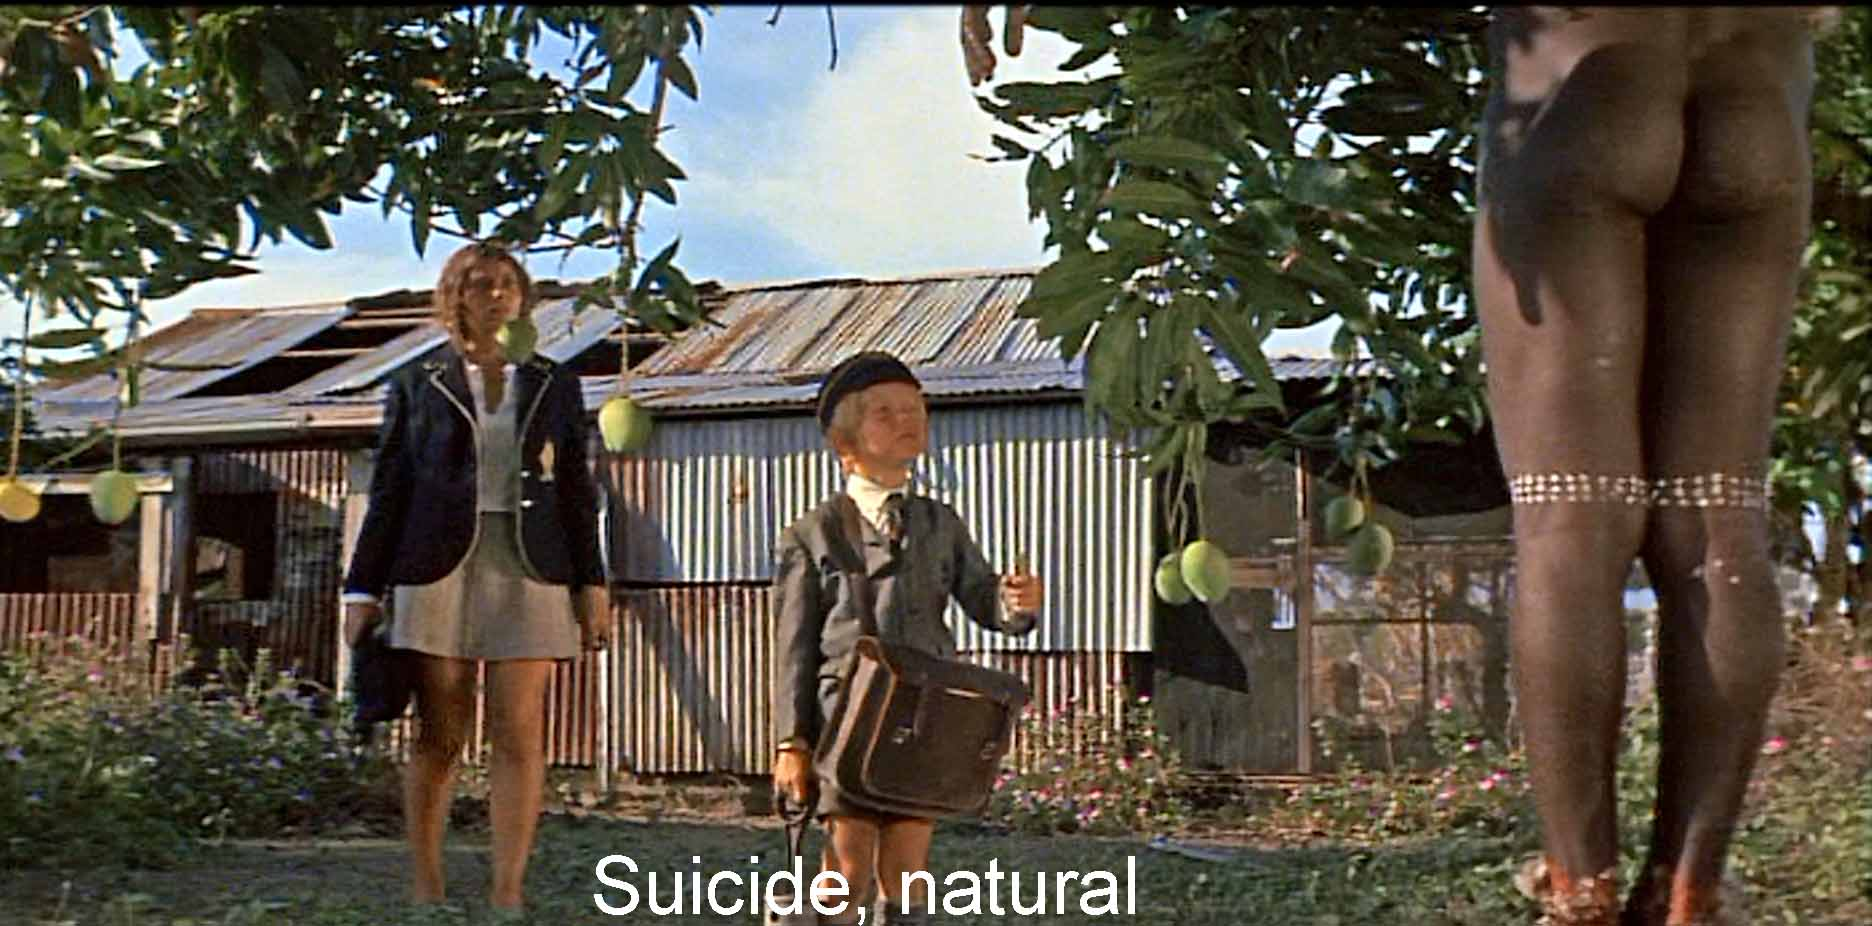 Suicide, natural